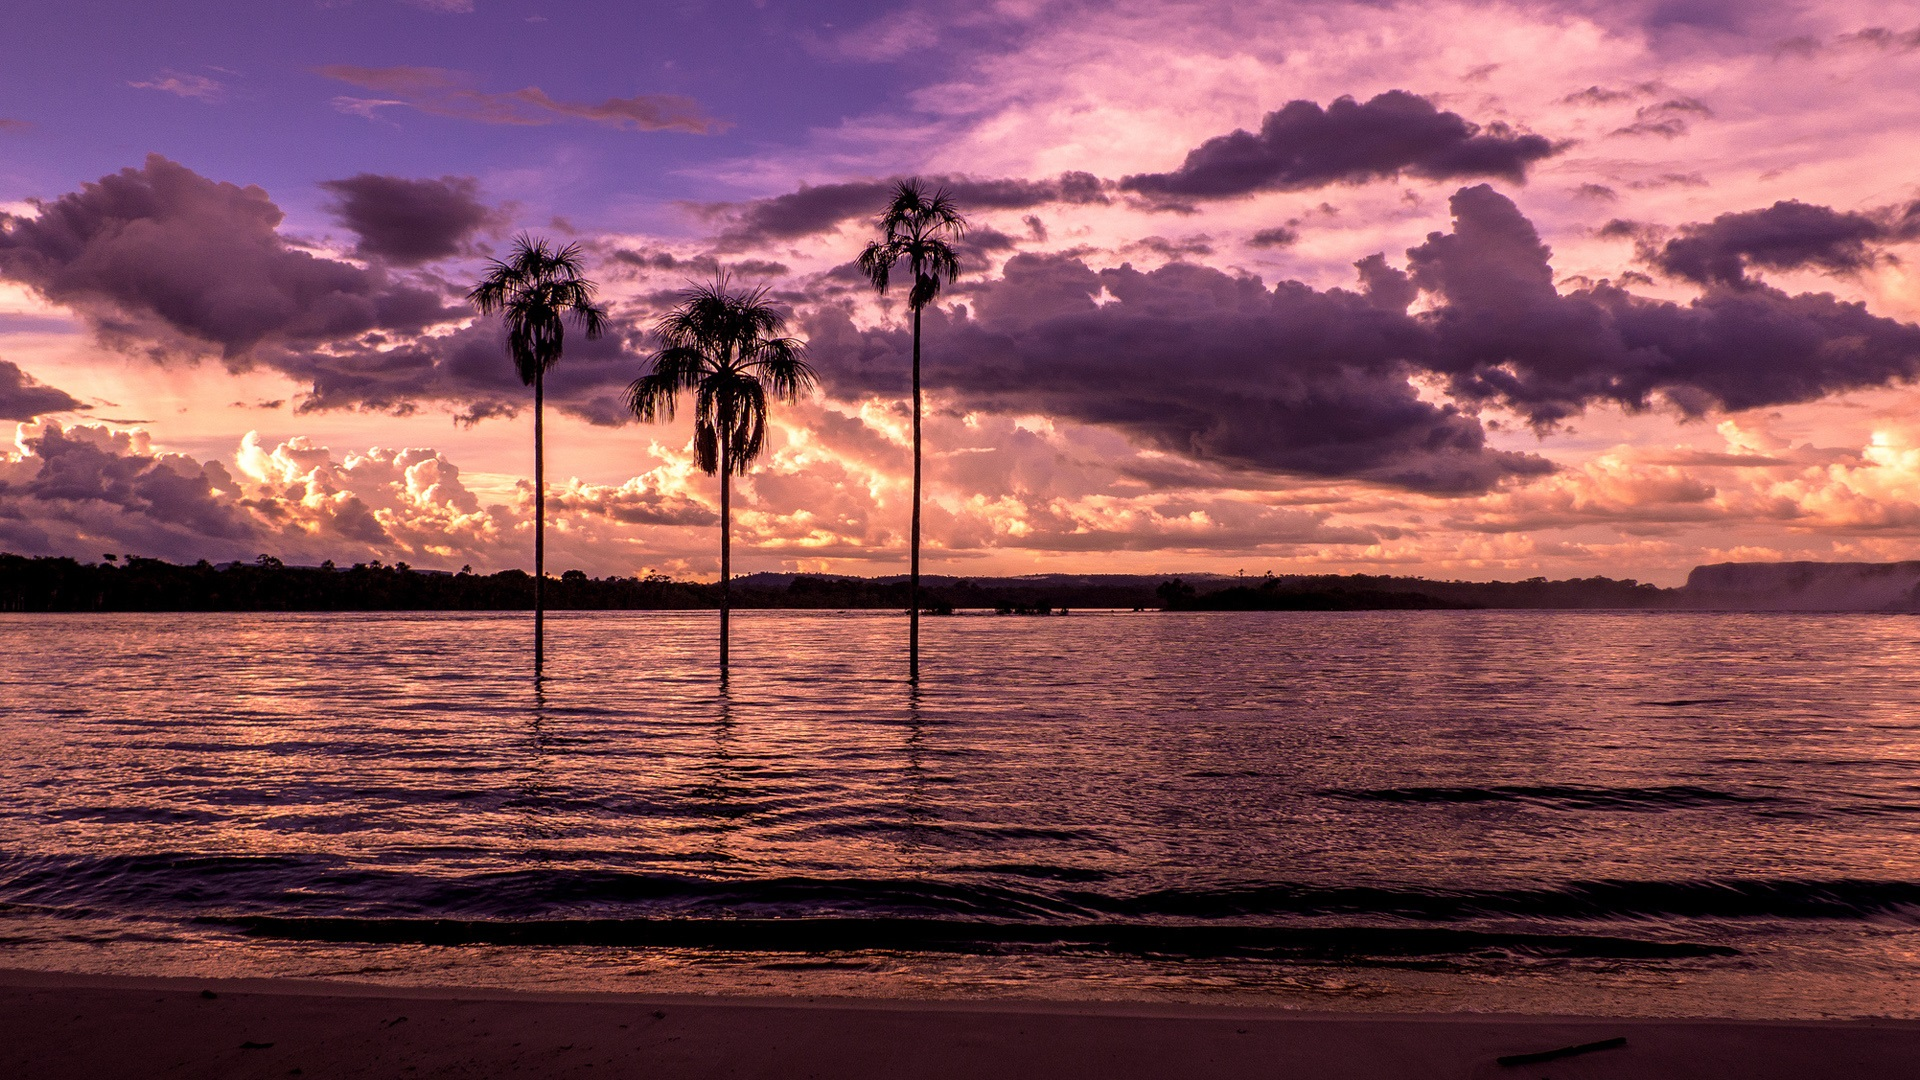 Sunset Over Beach Of Palm Trees Hd Wallpaper: Wallpaper Beach, Bay, Palm Trees, Sunset, Purple 1920x1080